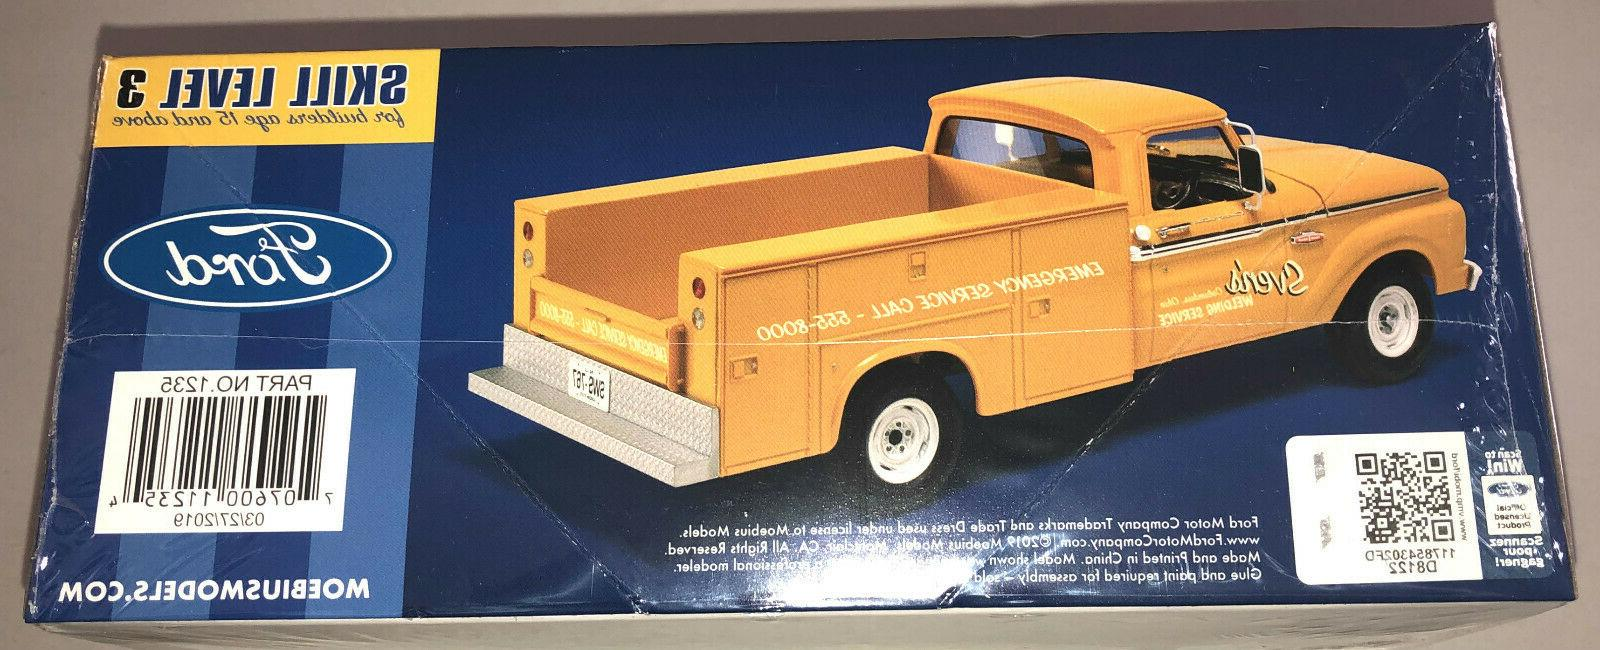 Moebius 1965 Service Truck 1:25 model new in